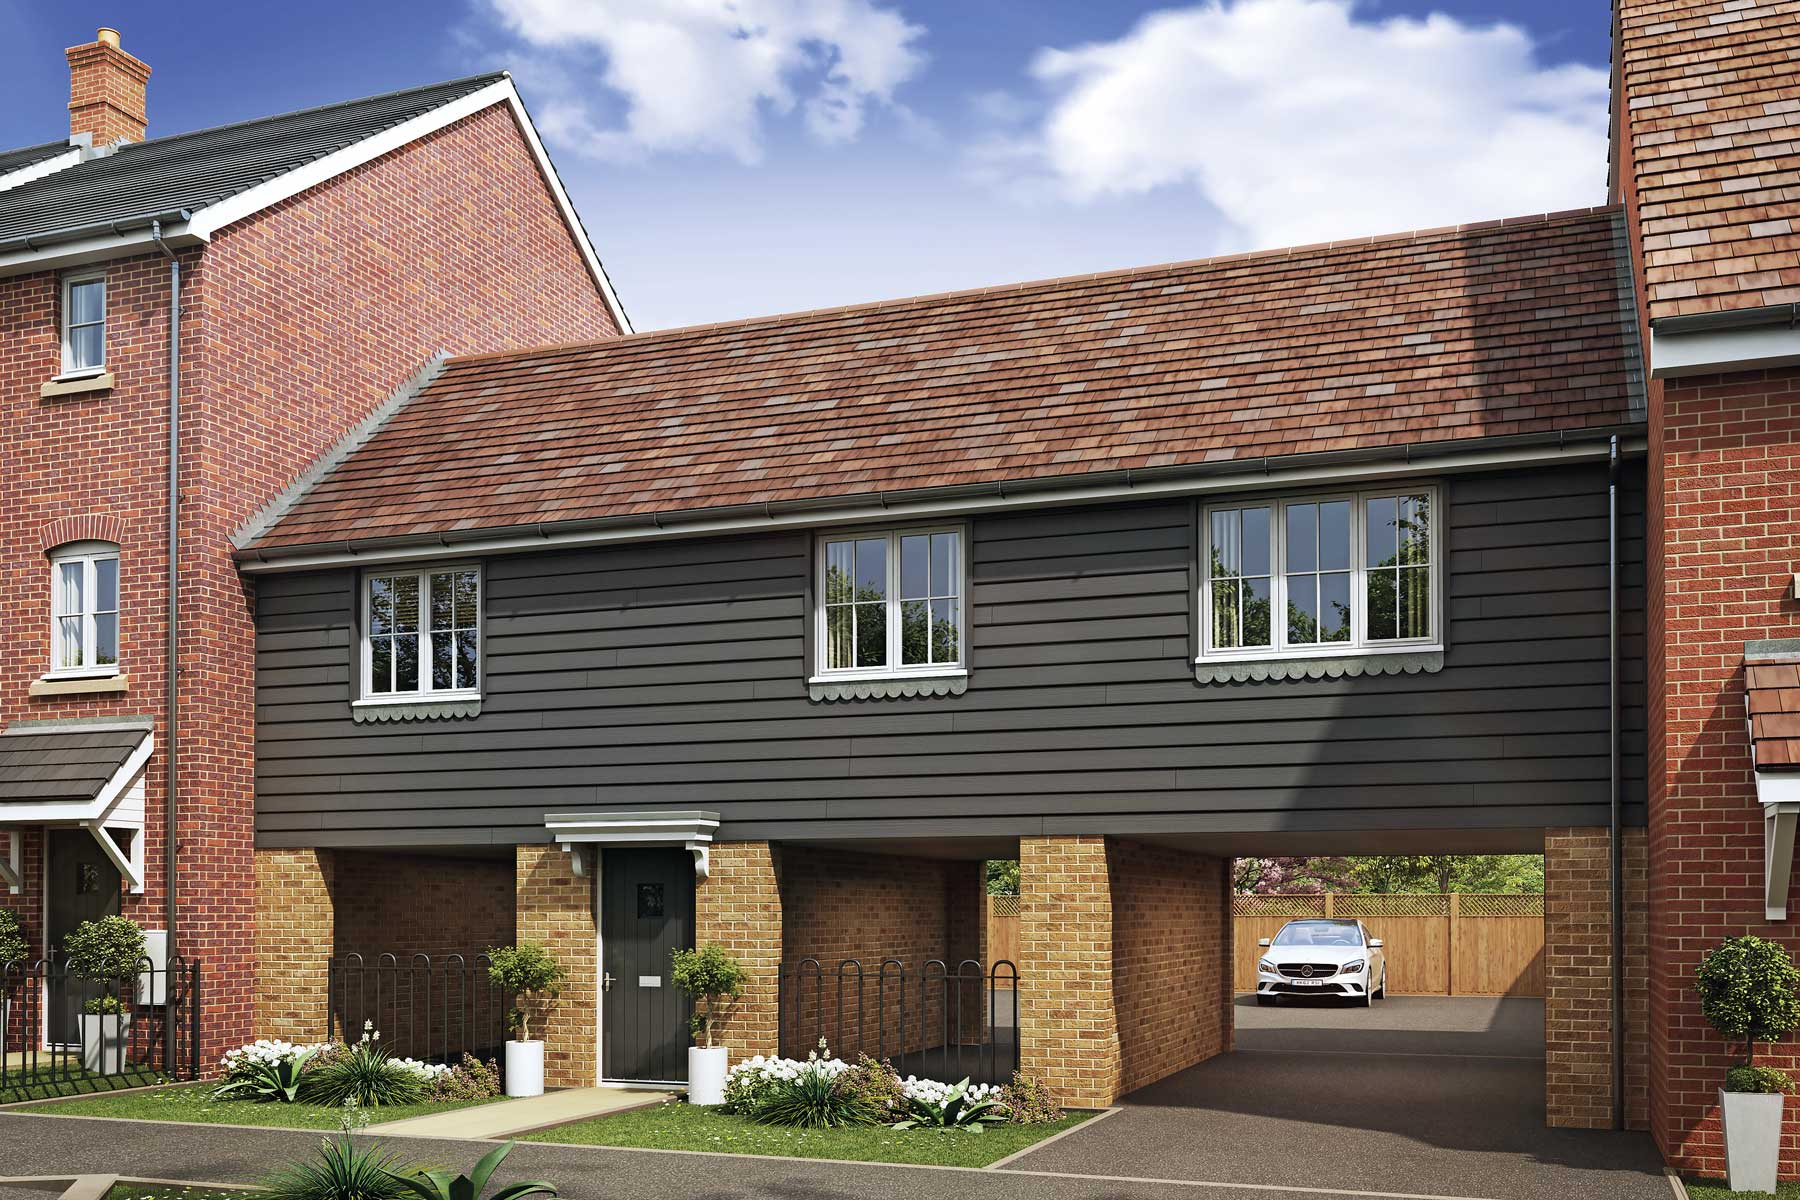 The Edale Taylor Wimpey